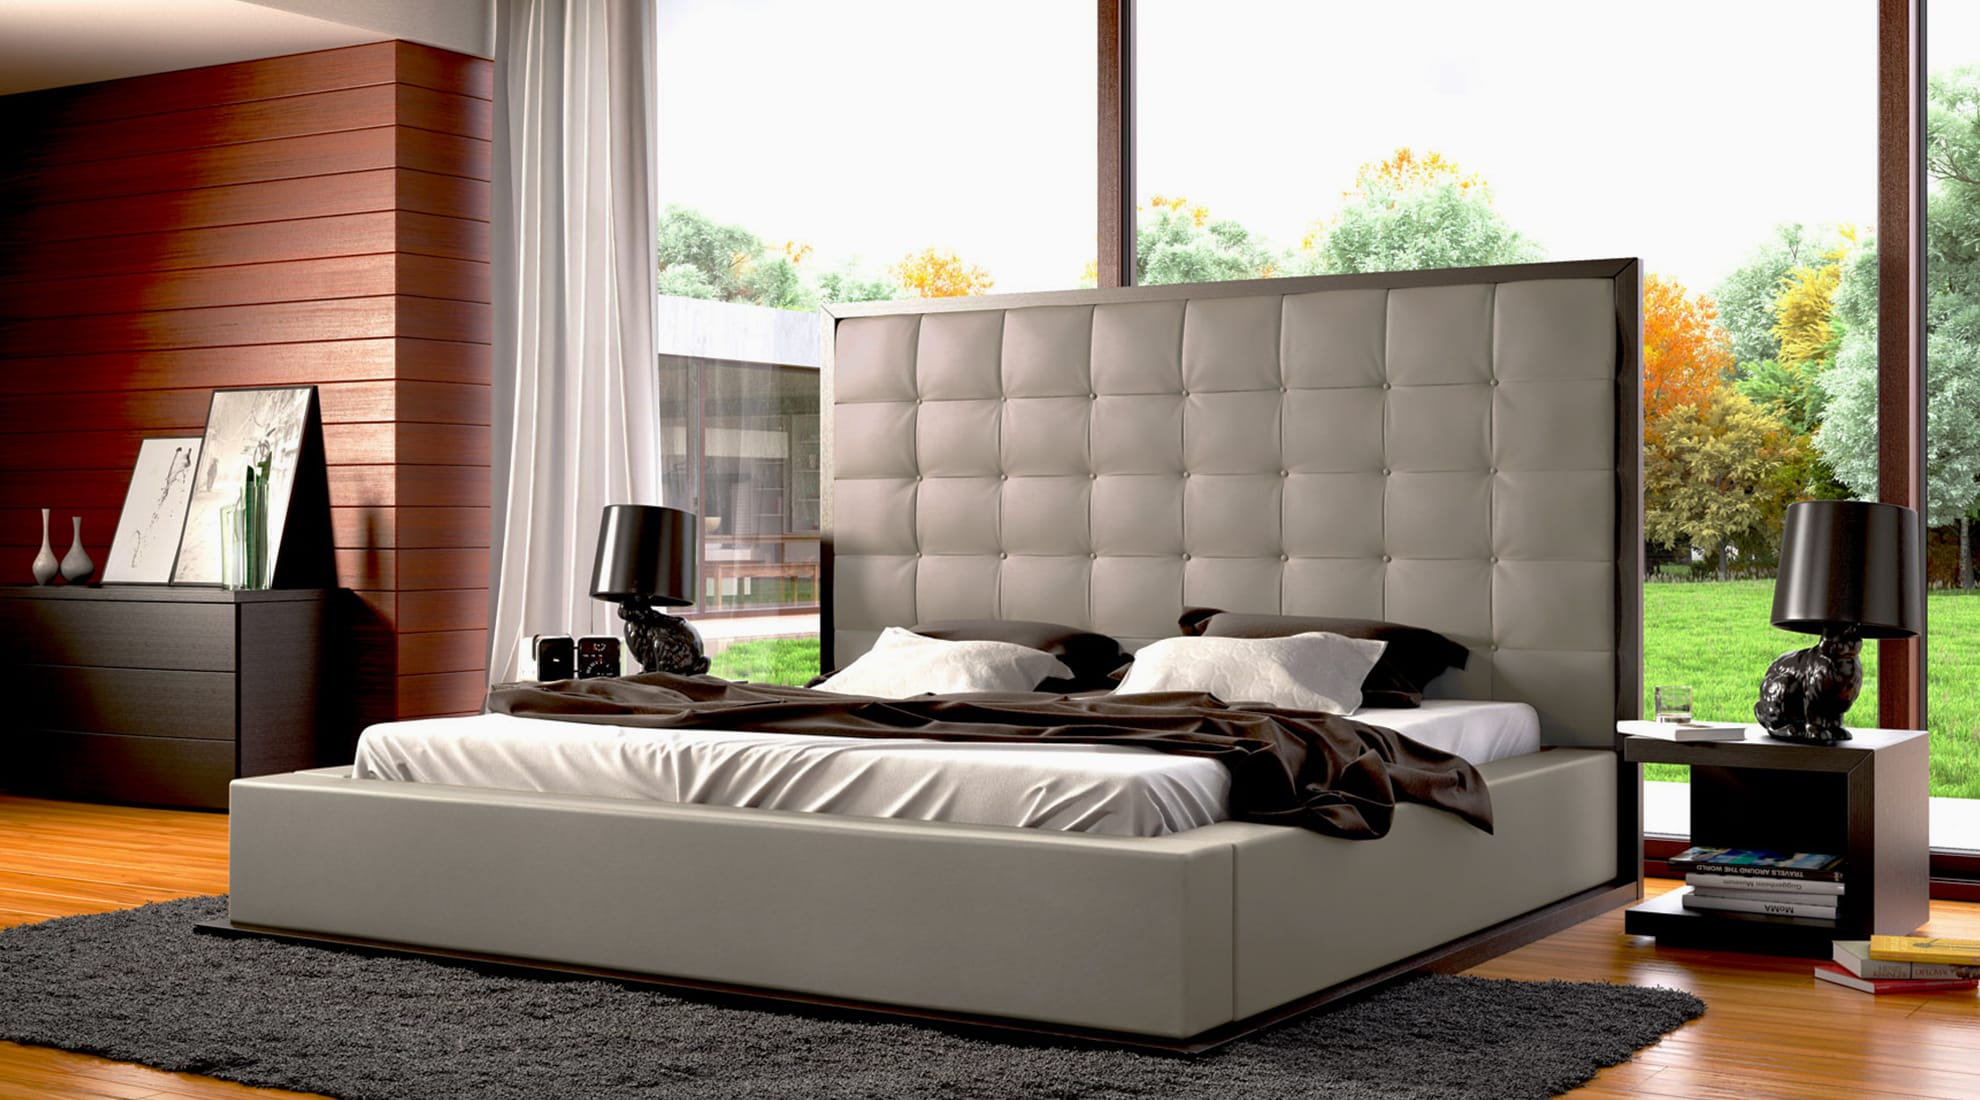 Ludlow Bed by Modloft and Rabbit Table Lamp by Moooi